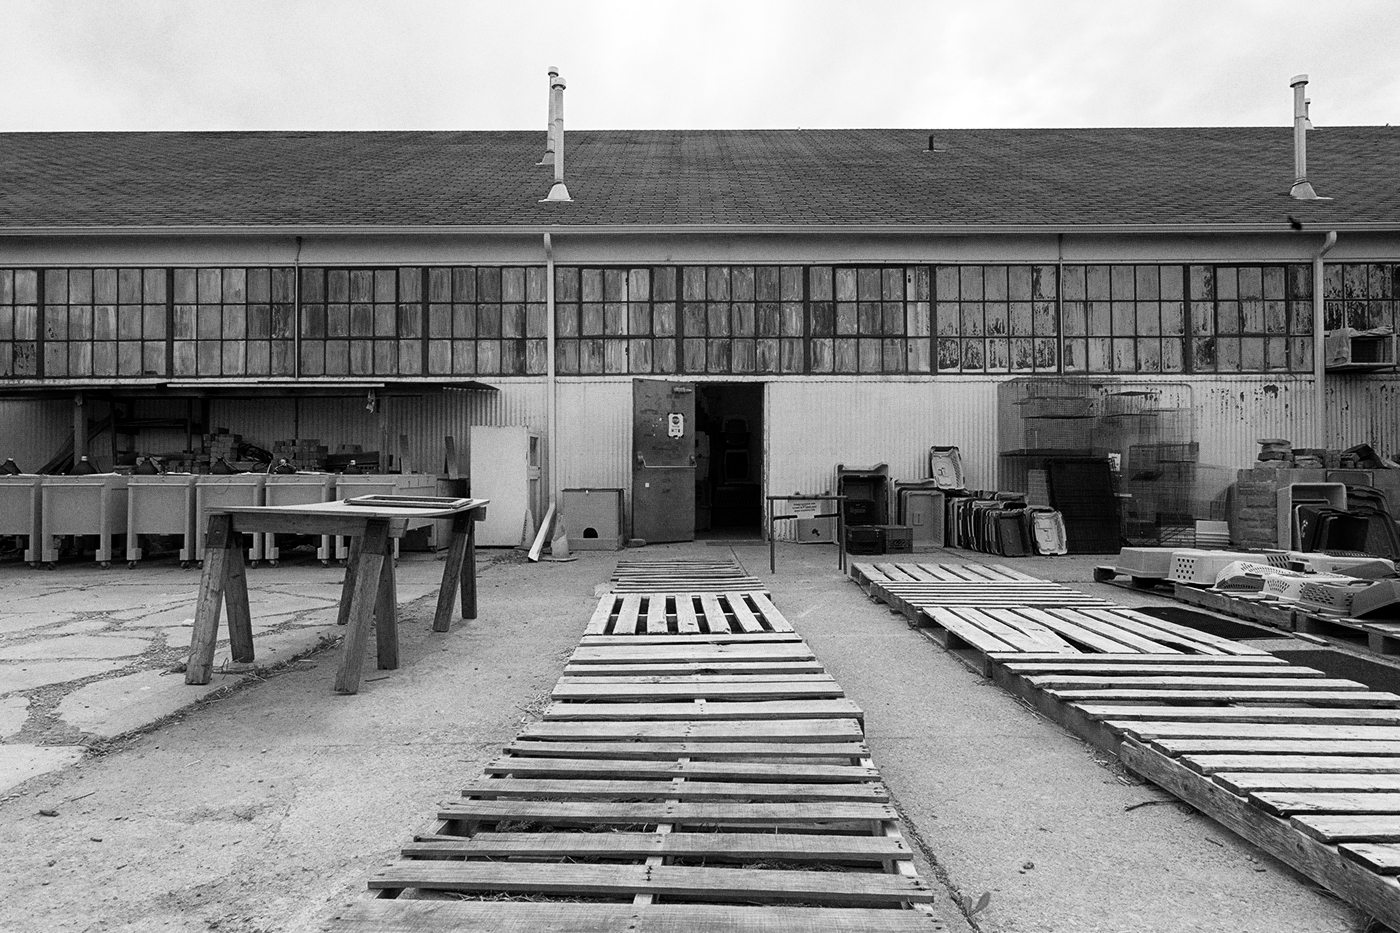 A large yard in front of low building, there are many wooden pallets in the yard.